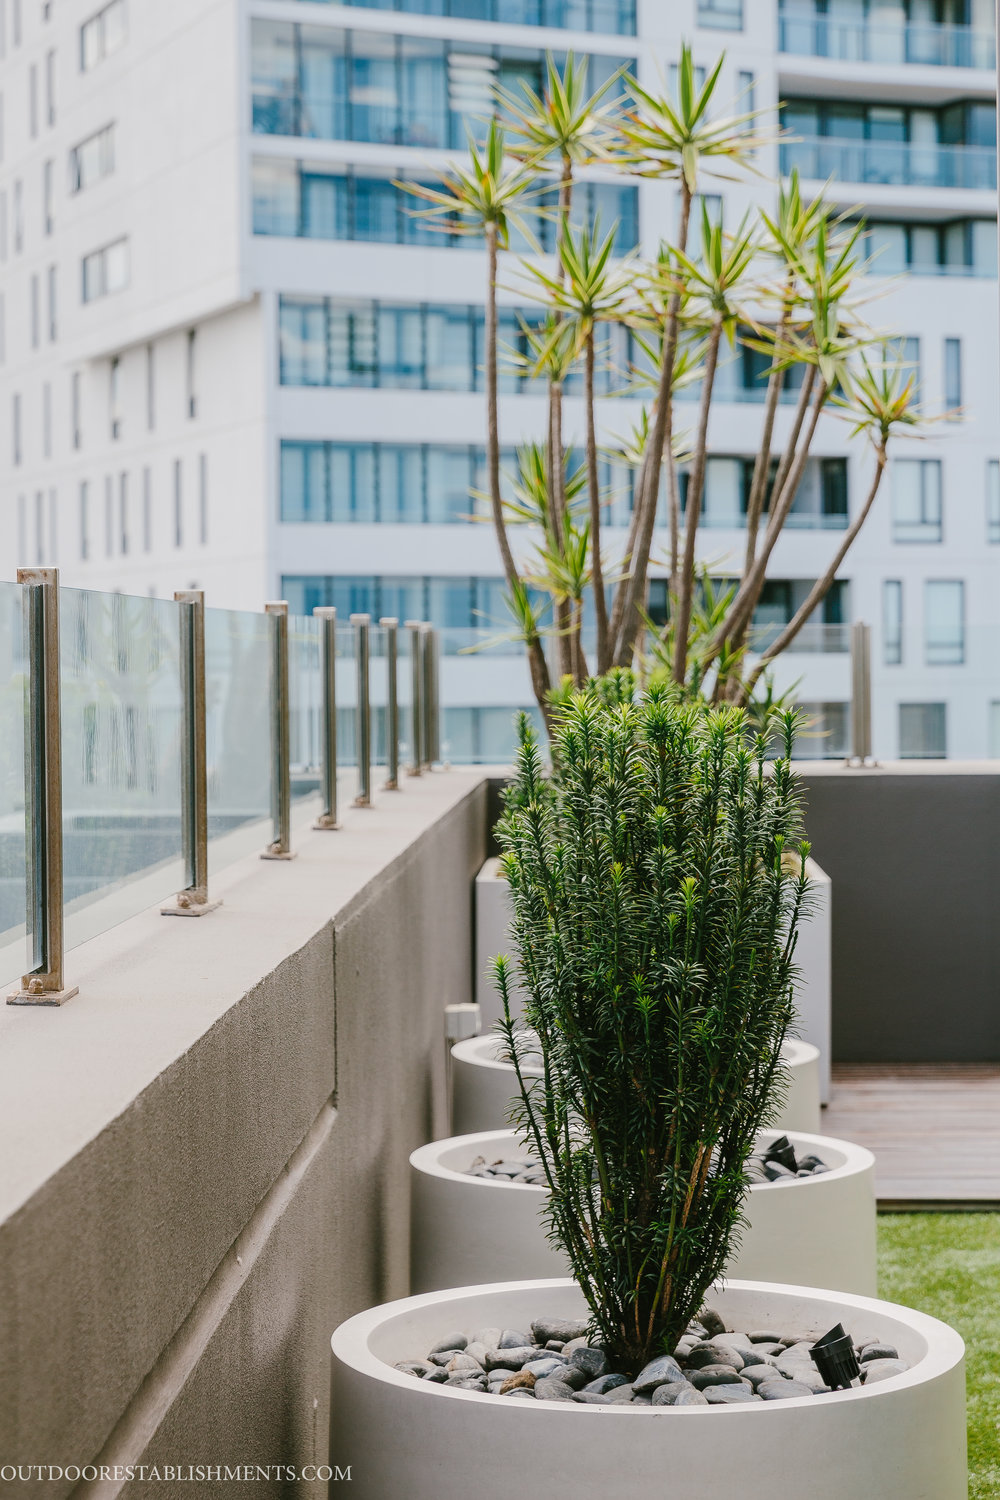 Architectural planting by Outdoor Establishments